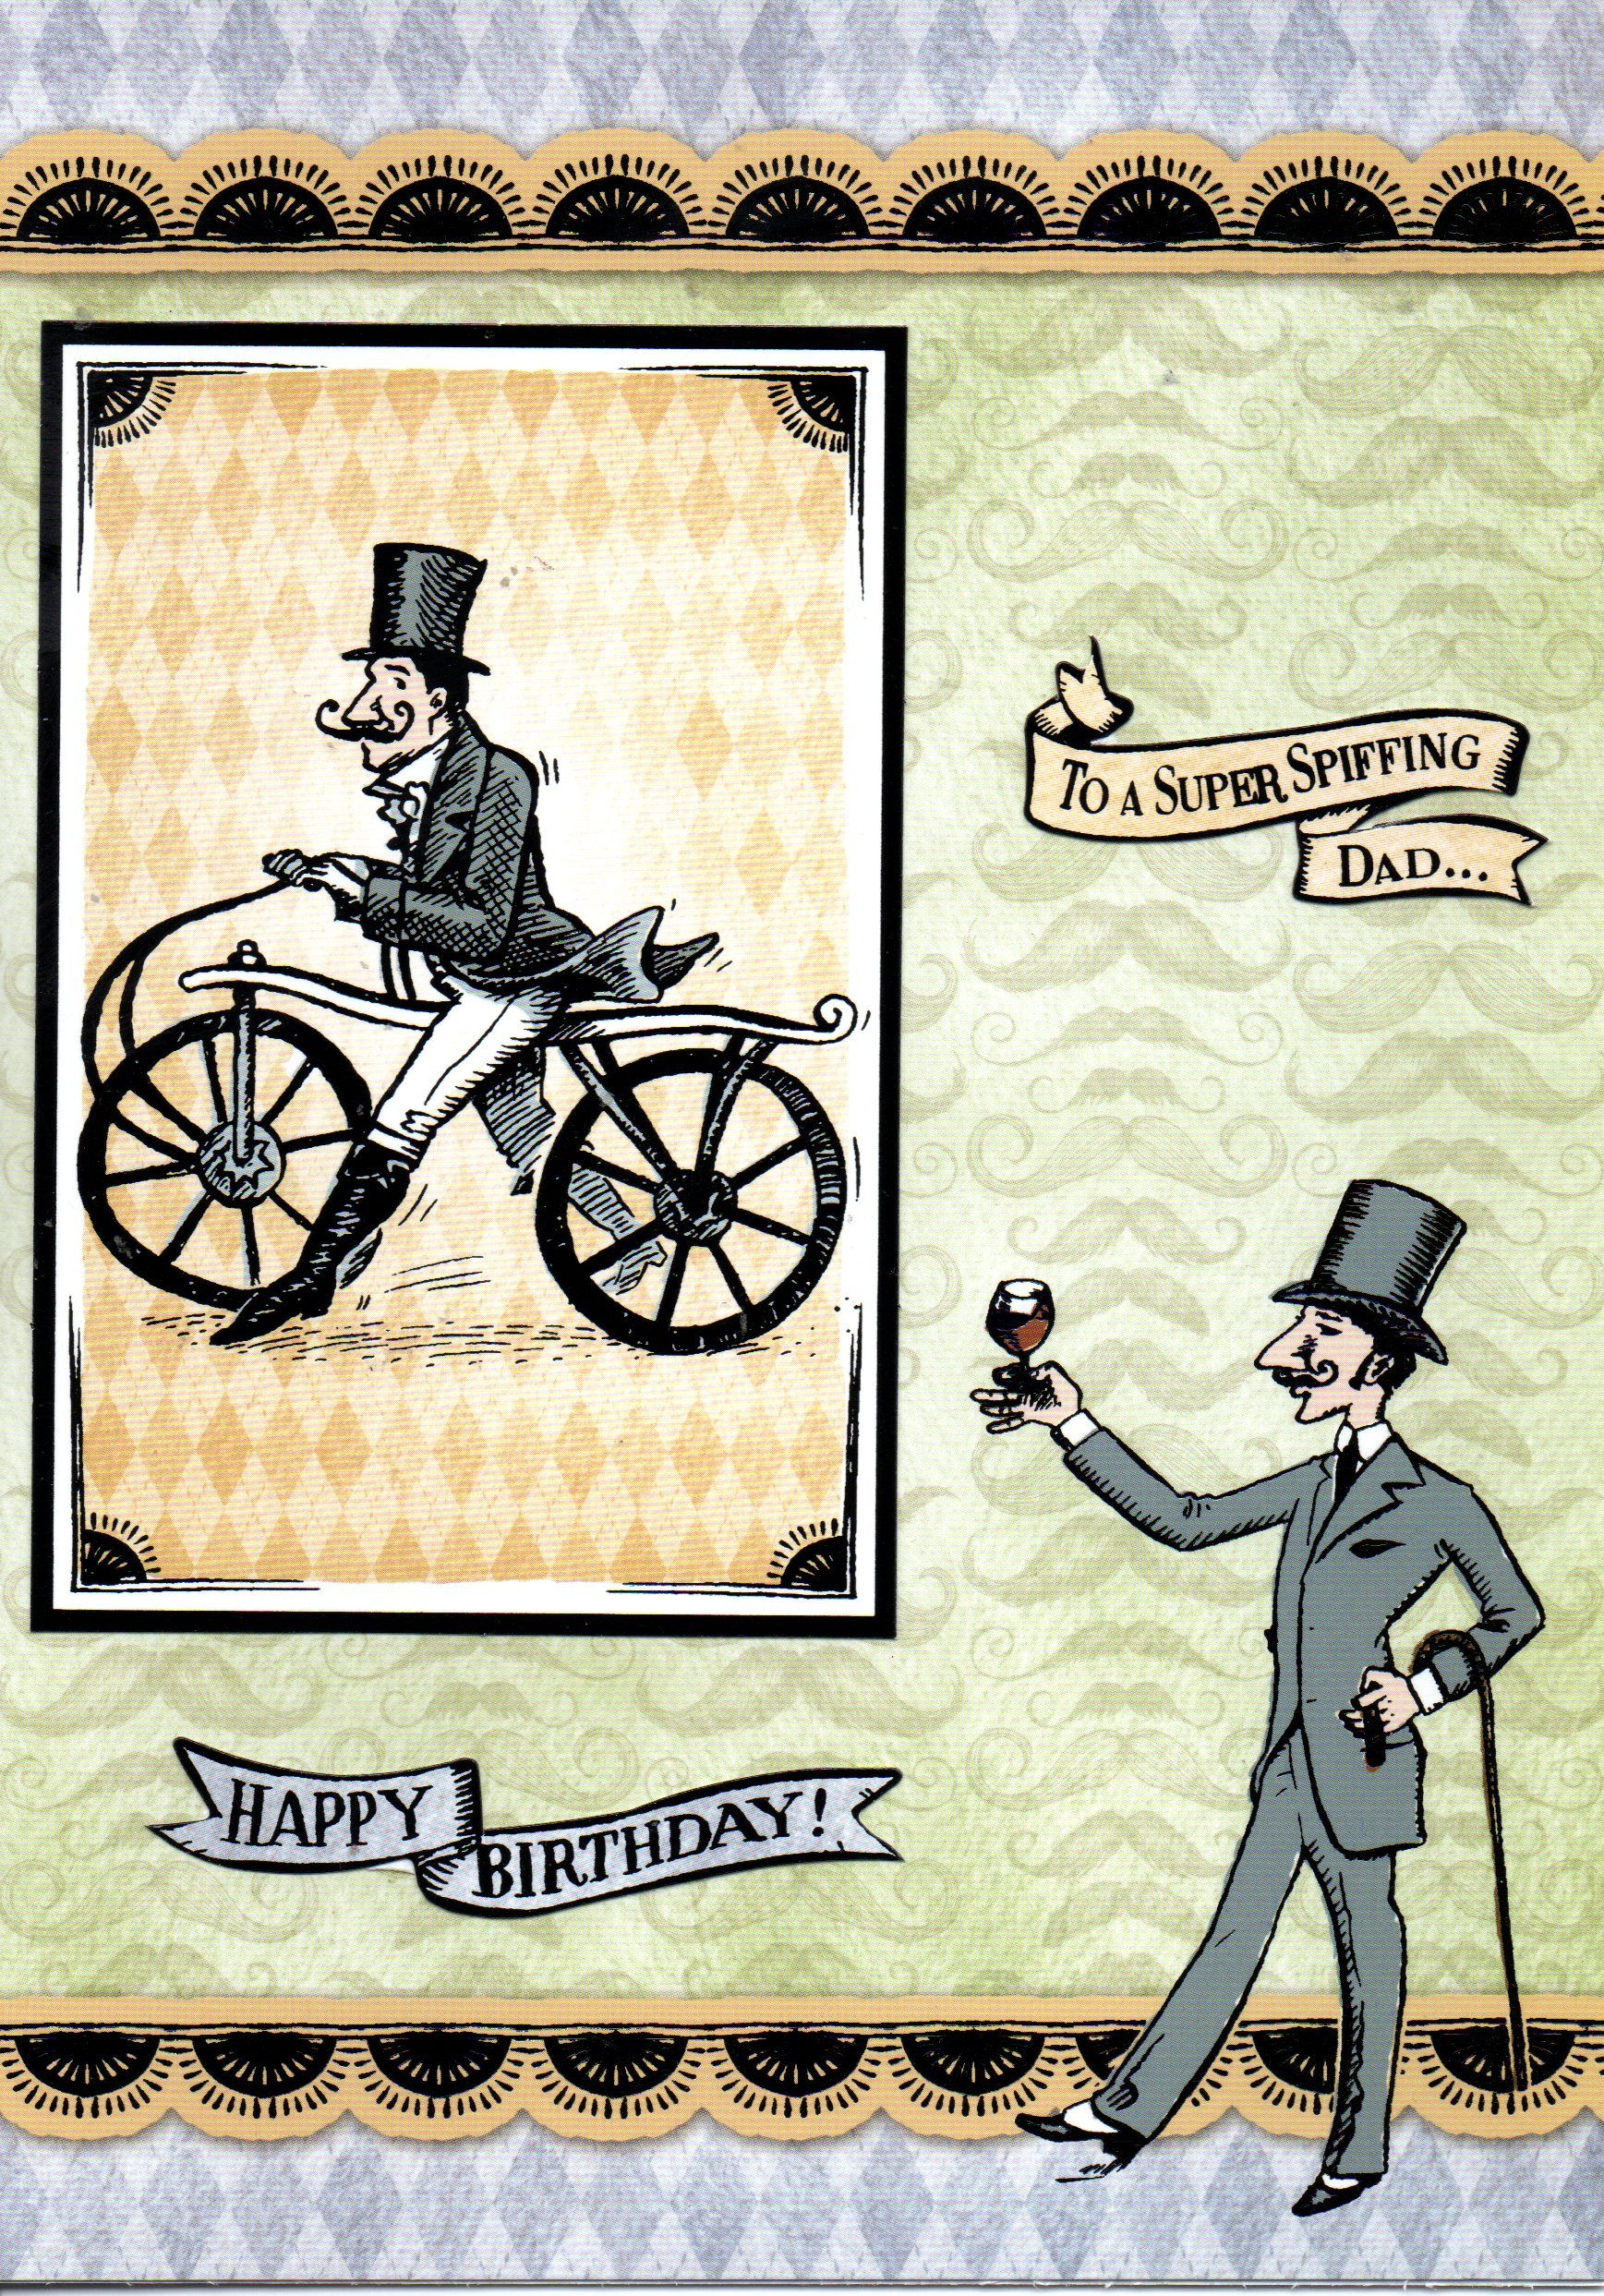 Old fashion bike and man in top hat To a Super Spiffing Dad card